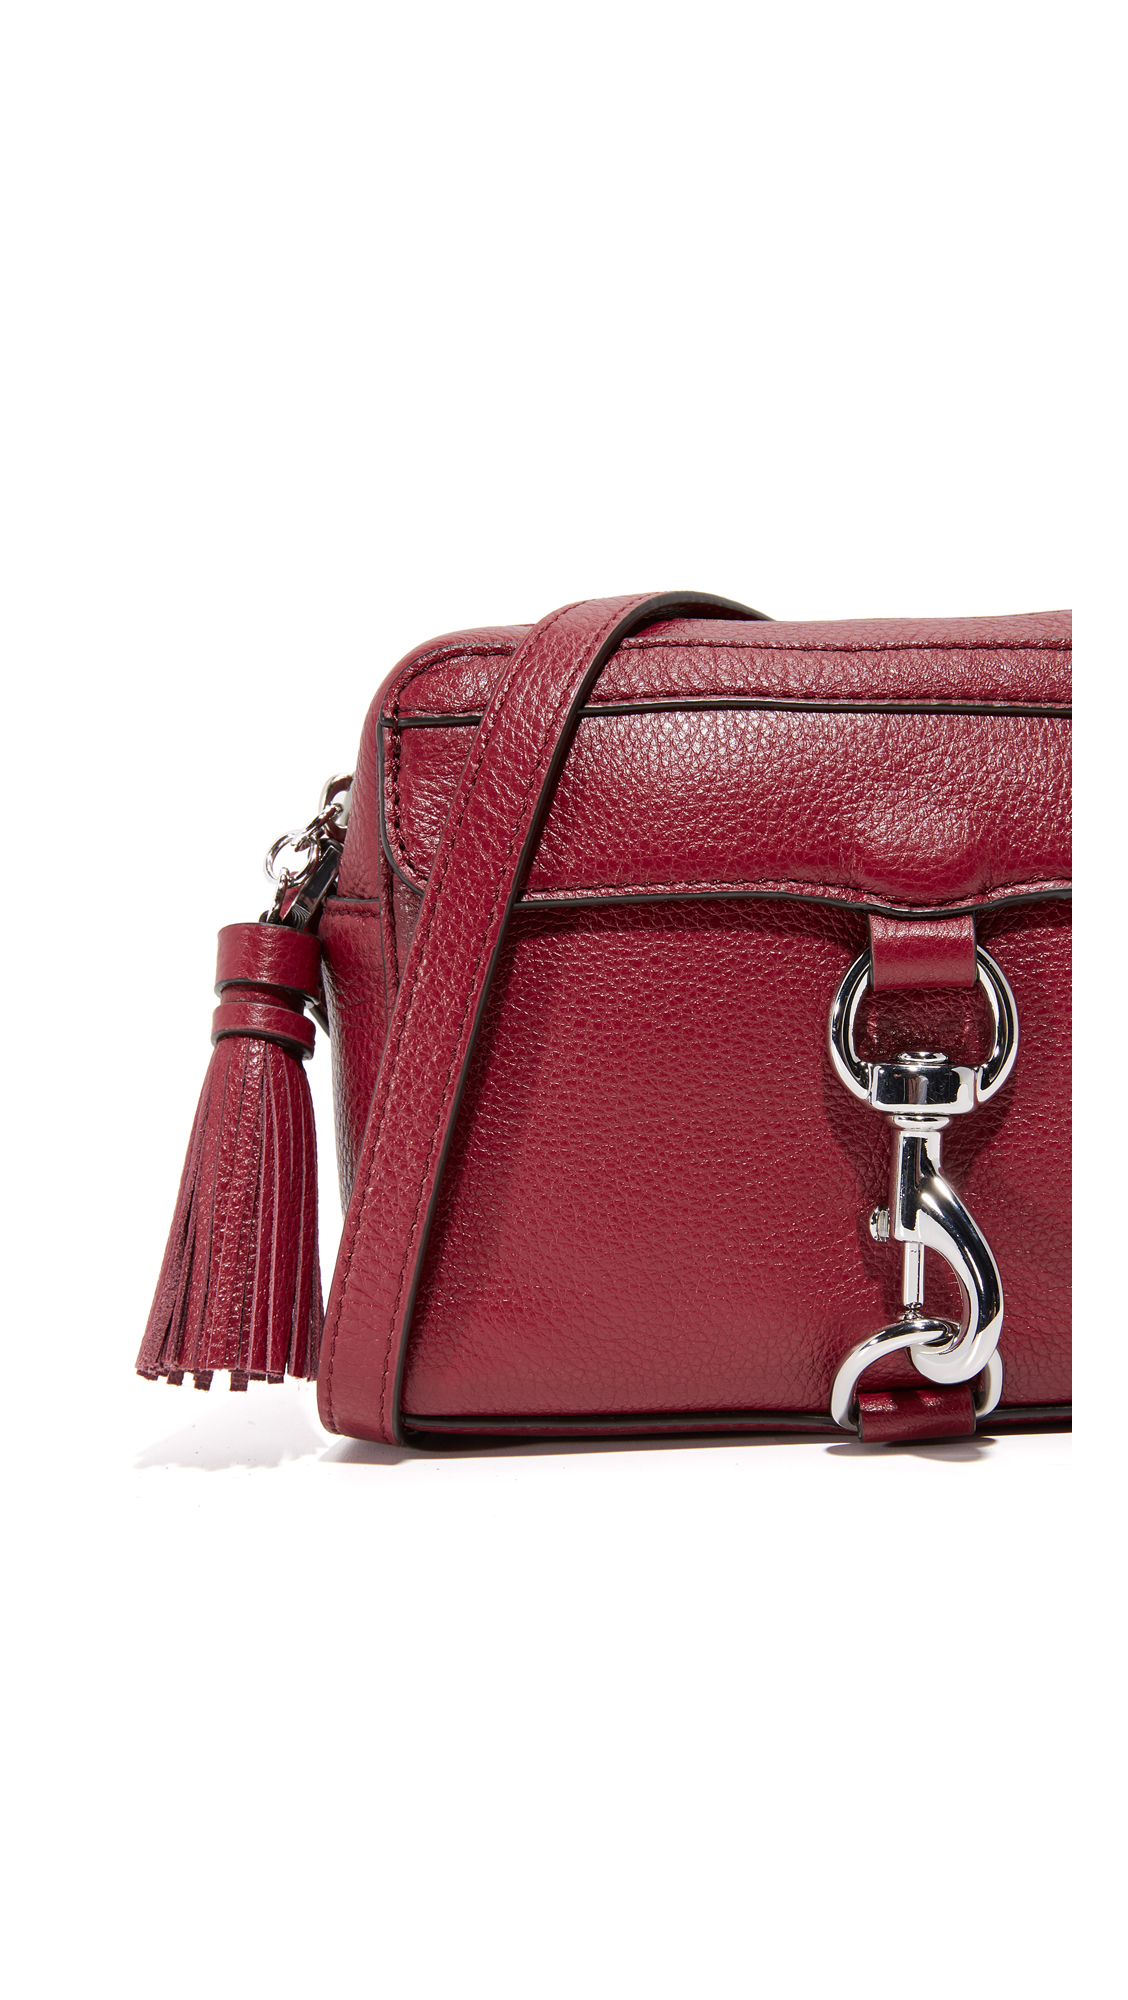 Mini Convertible Rebecca Minkoff 5 Body Zip Cross Handbag Hot Red Monitor your account. In addition to depositing cash to your account to cover any overdrafts by 9 p.m. ET that same business day, a good practice is to set up customized balance alerts via online or mobile banking.